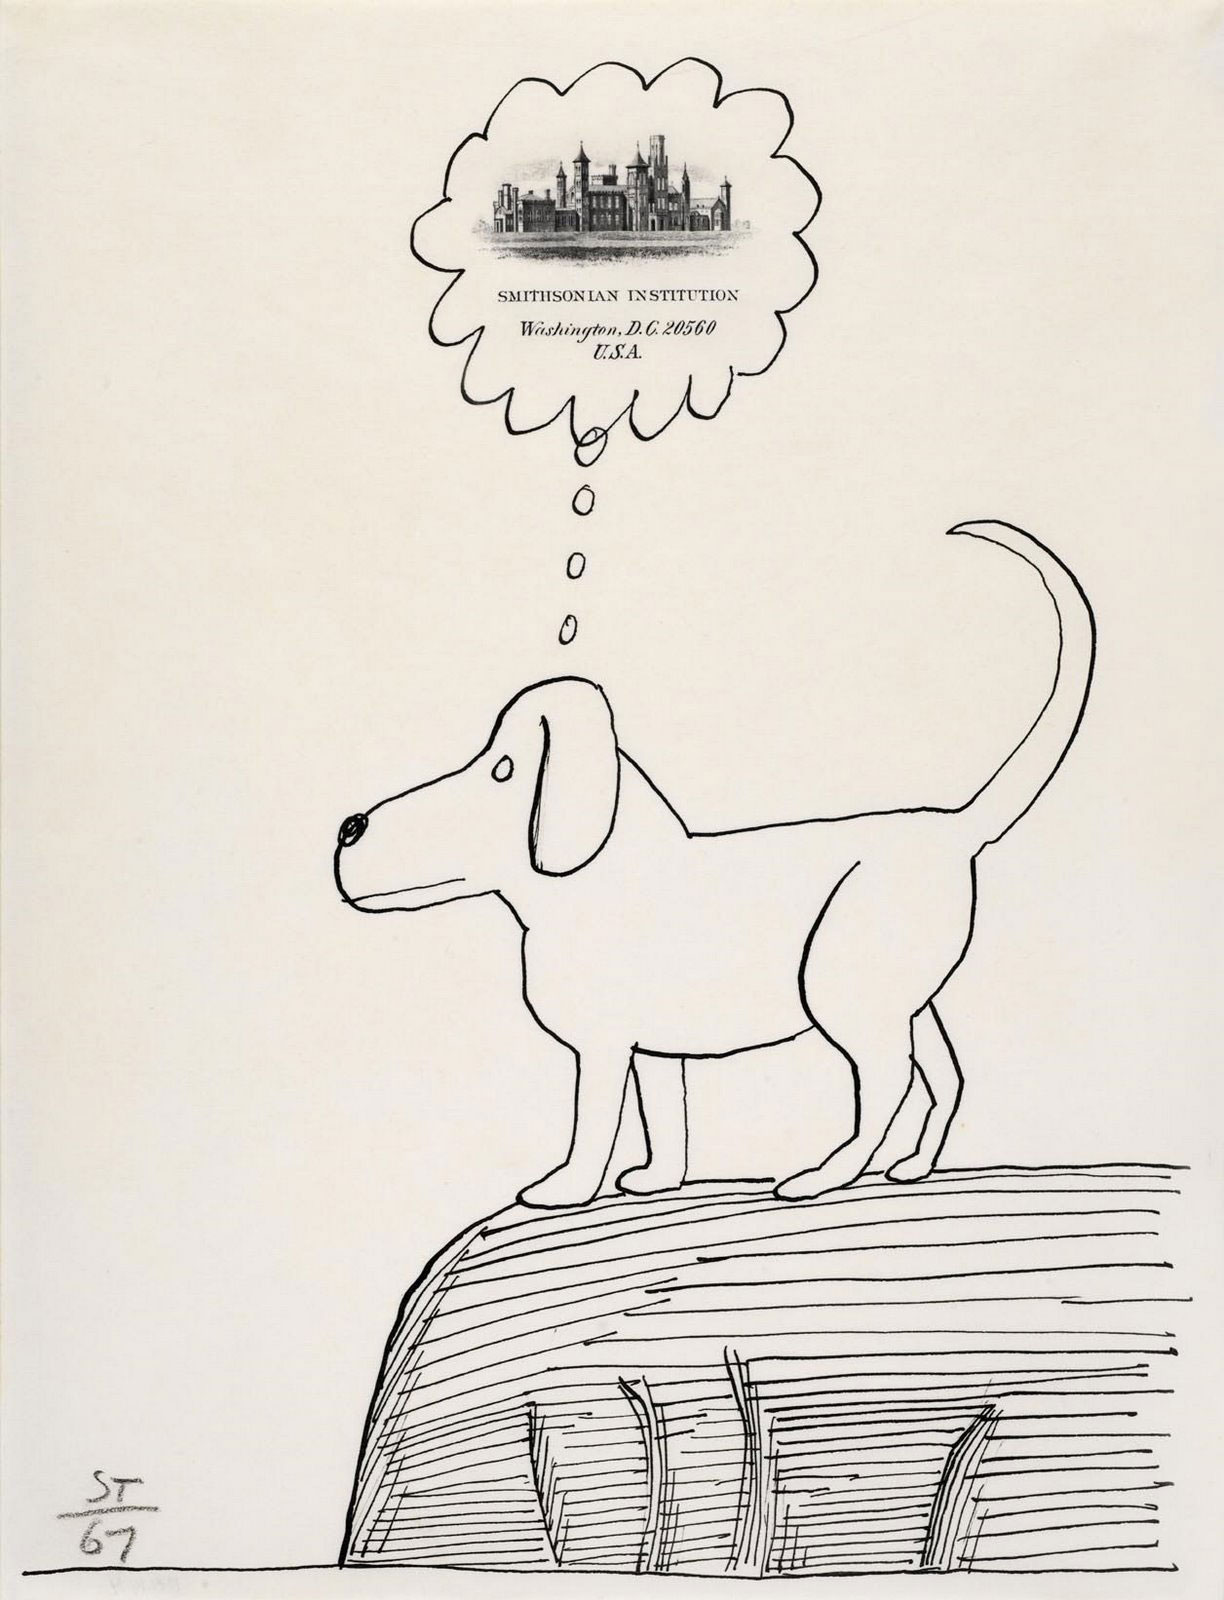 Drawing on Smithsonian Institution stationery © 1967 by The Saul Steinberg Foundation